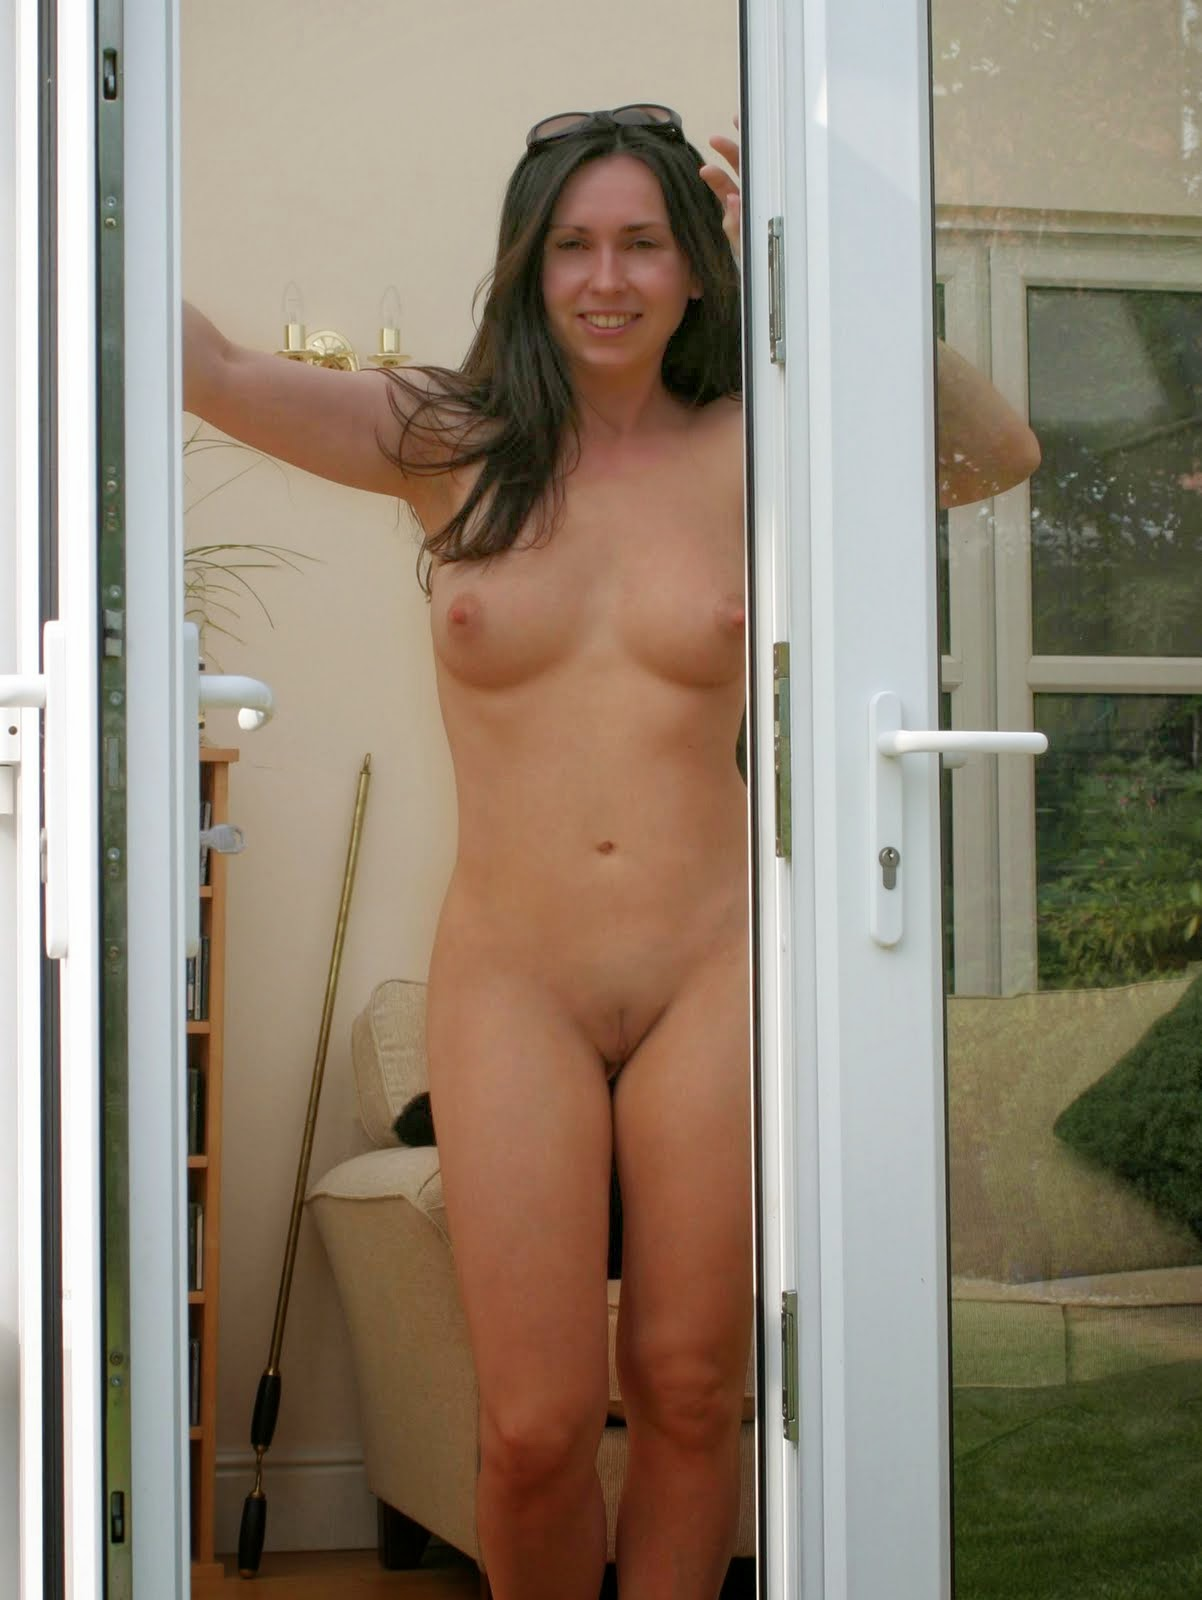 free images of nude girls in villages